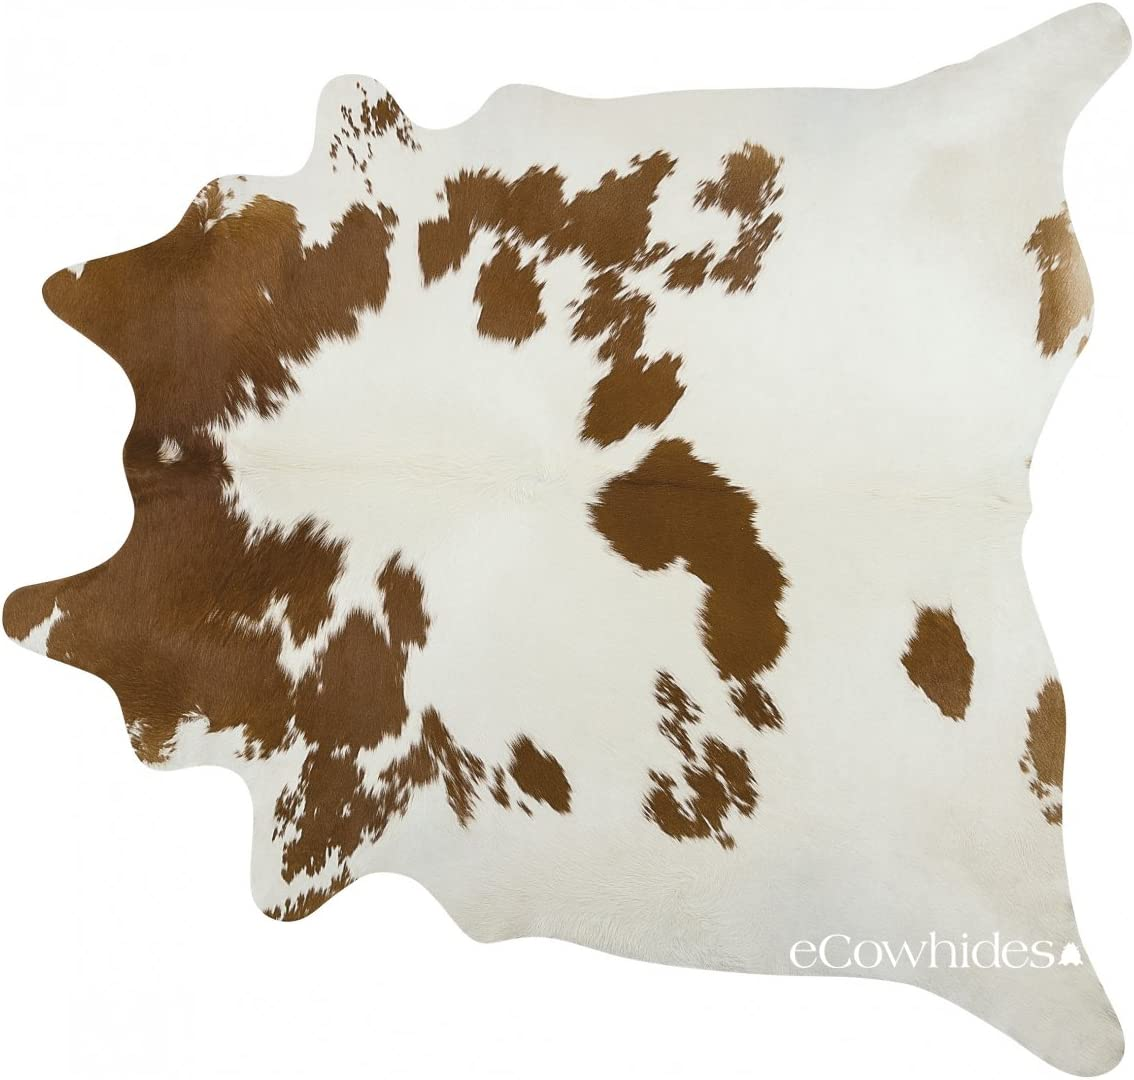 eCowhides Brown and White Brazilian Cowhide Area Rug, Cowskin Leather Hide for Home Living Room XXL 8 x 7 ft